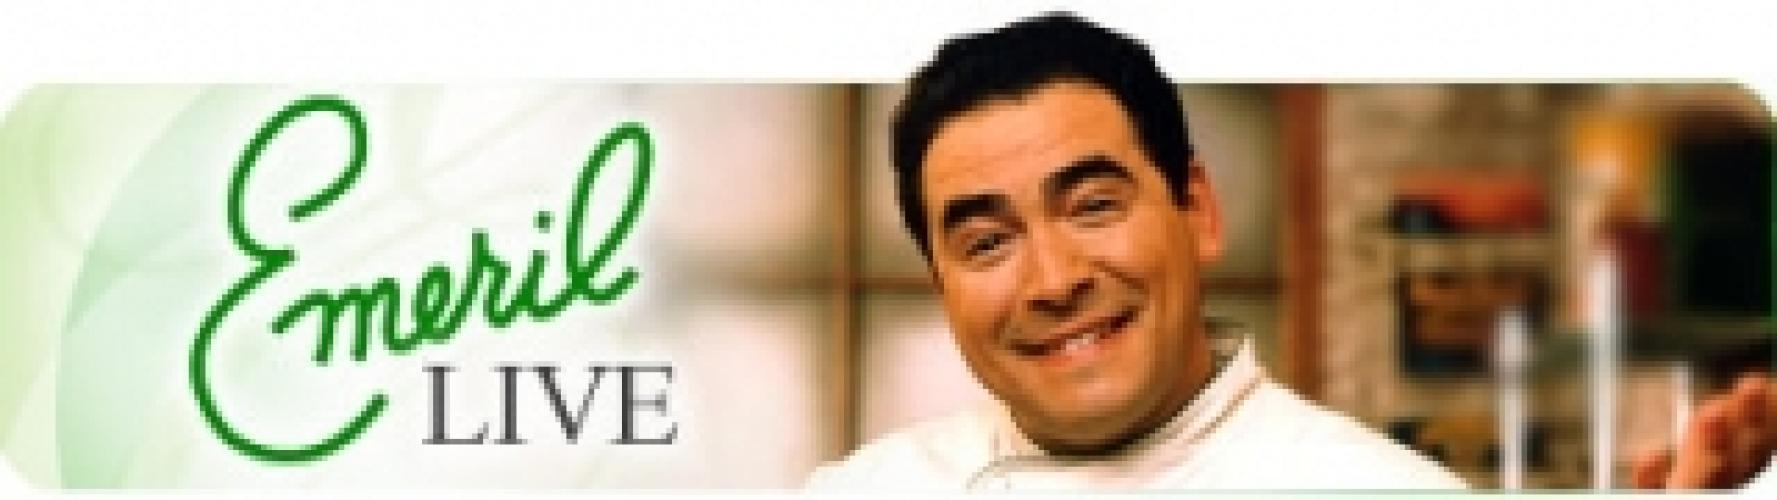 Emeril Live next episode air date poster